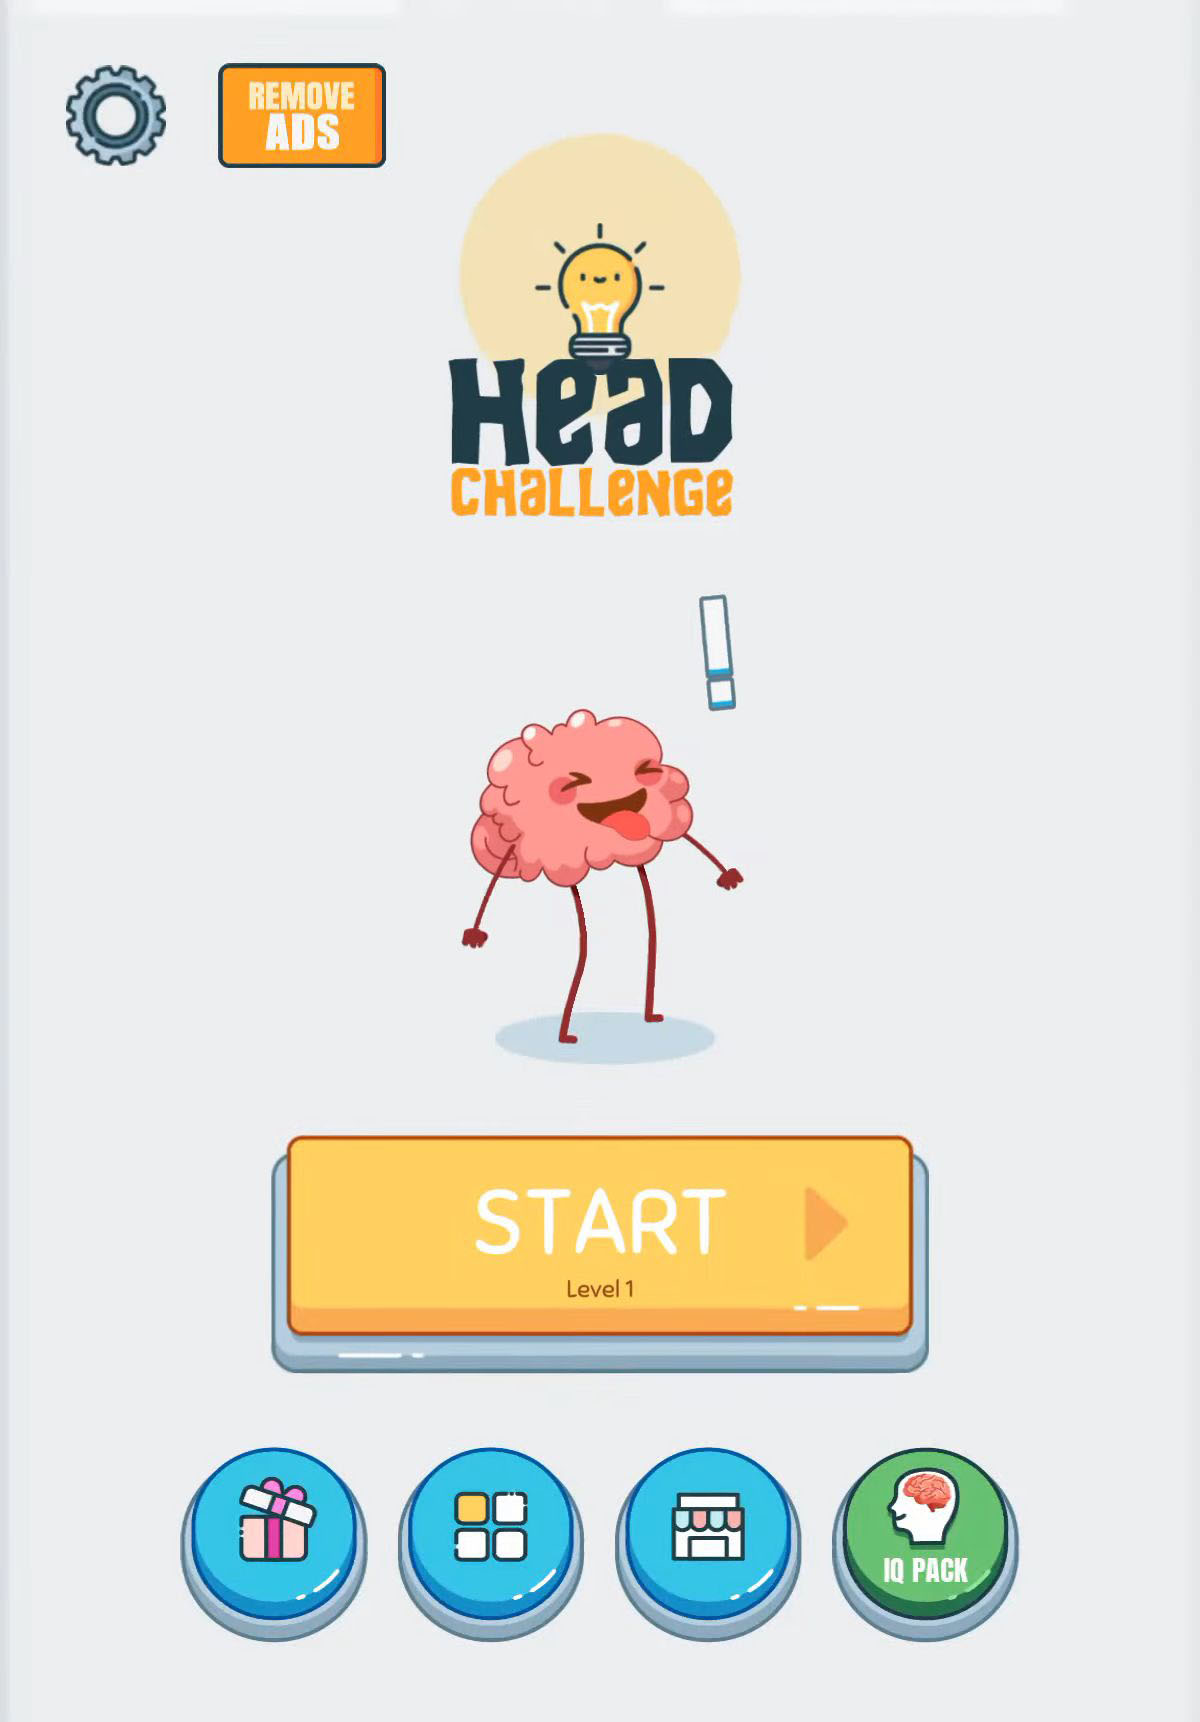 Head Challenge for Android